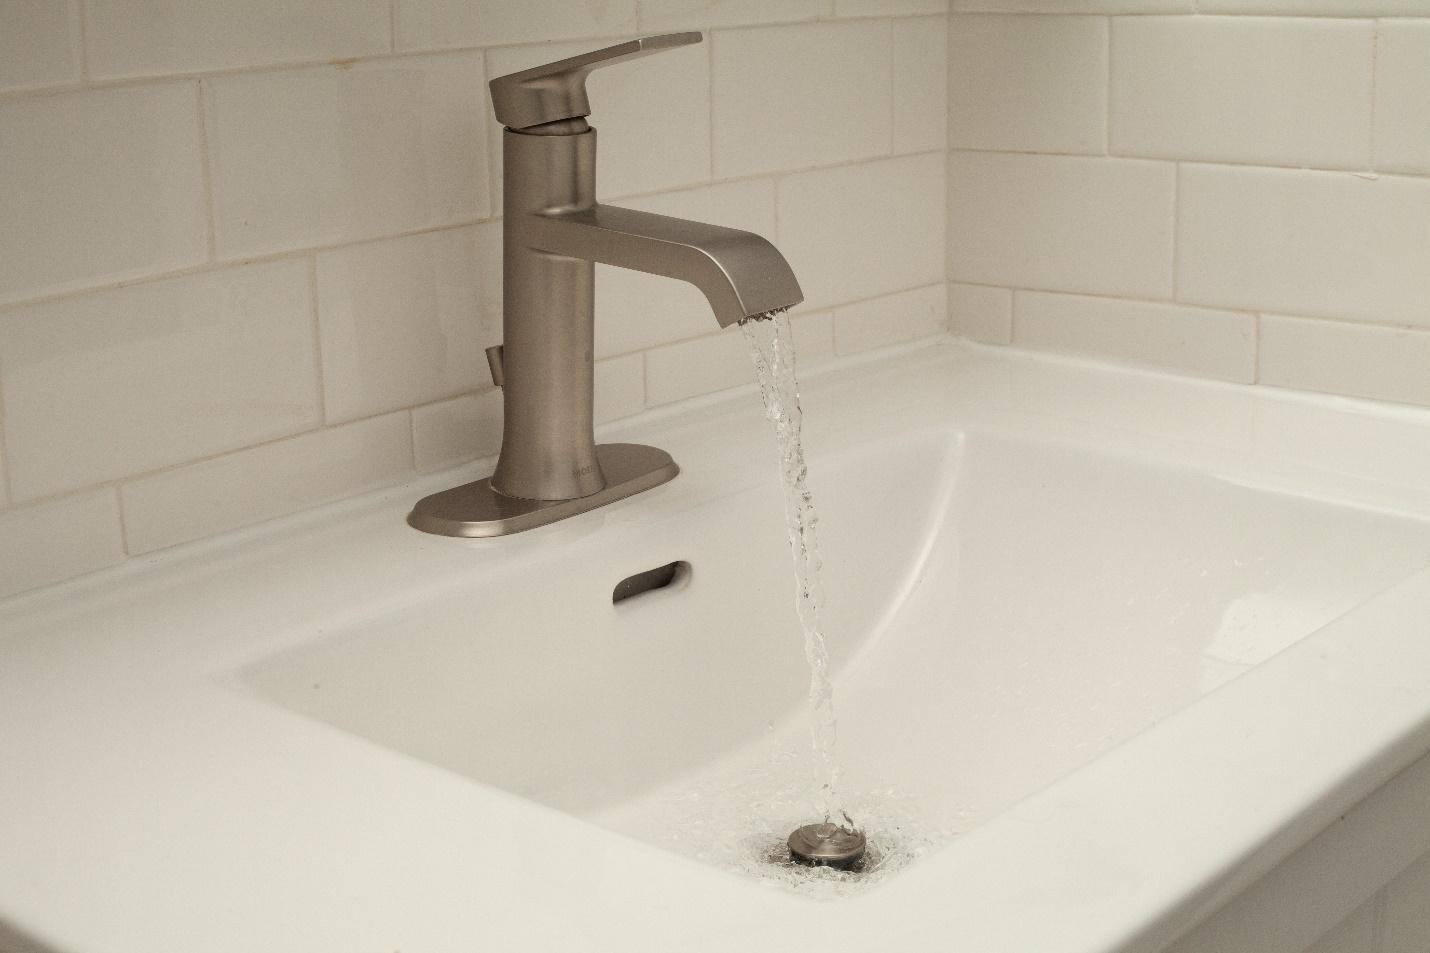 Burlington Plumbing Sink Installation and Repair